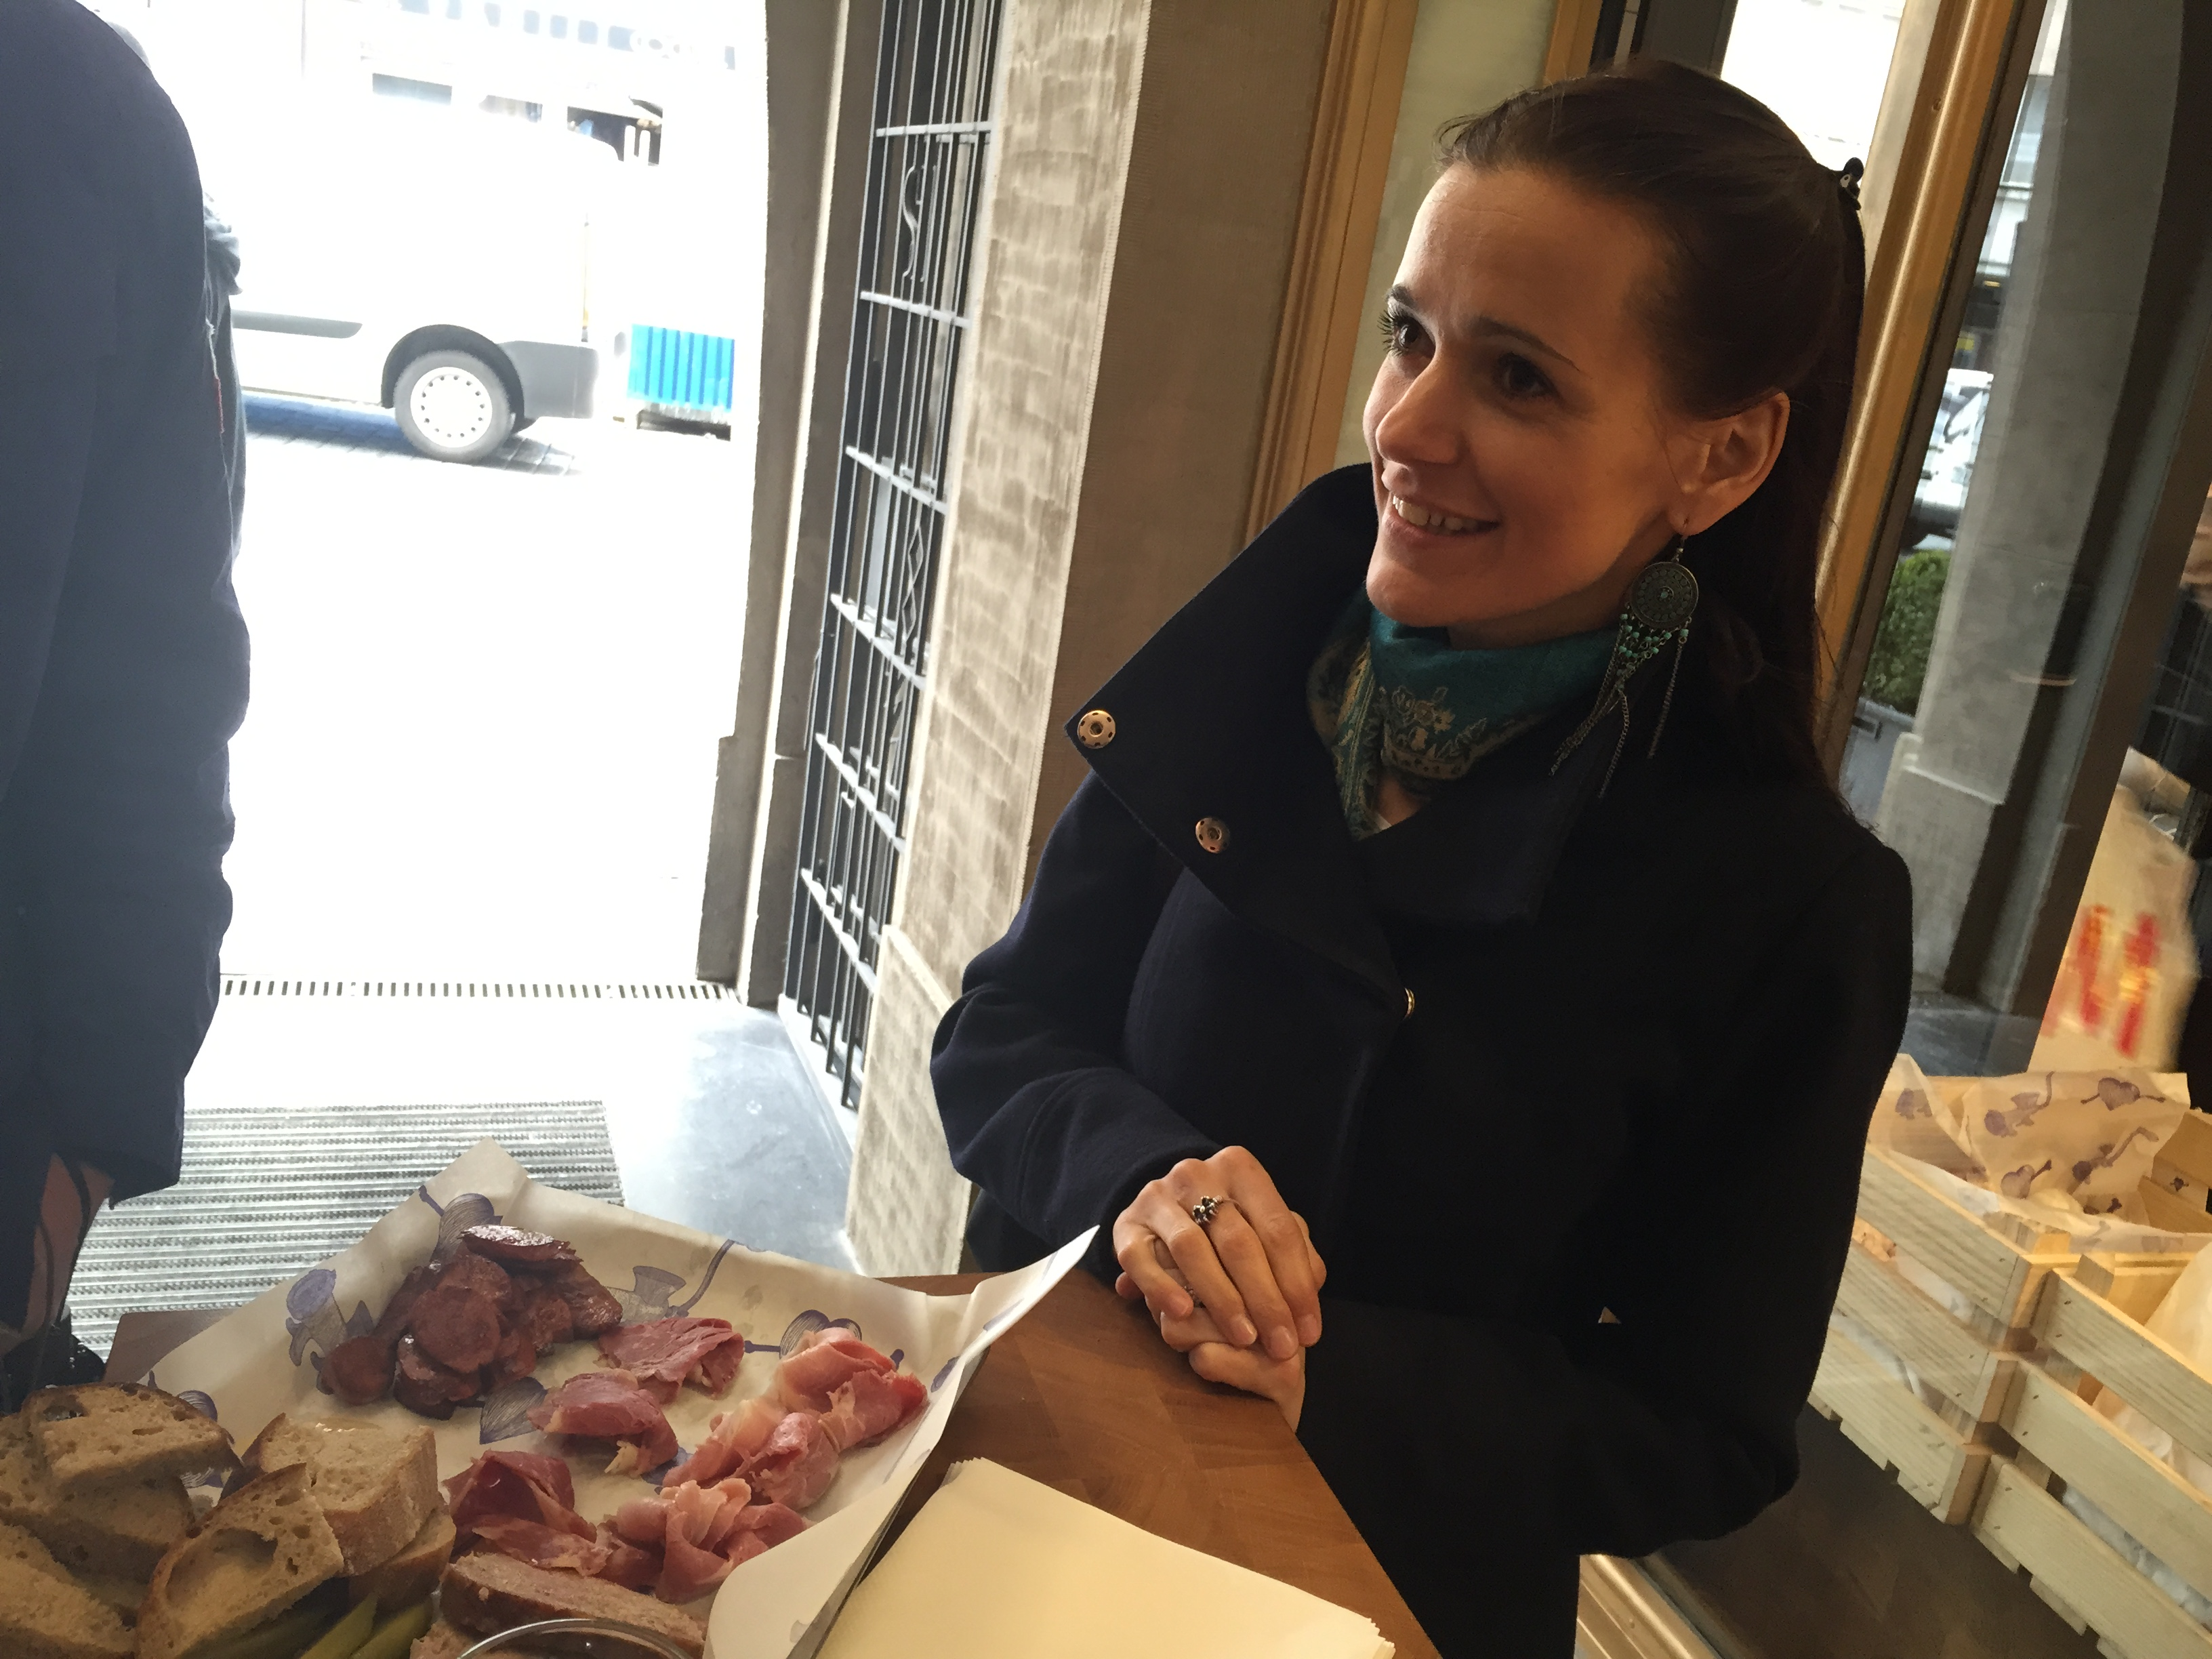 Mase Naso: Mirka serving up a meat platter: the most delicious meatloaf I've ever had, pan fried sausage, the famous Prague ham, beef silverside, mustards and bread